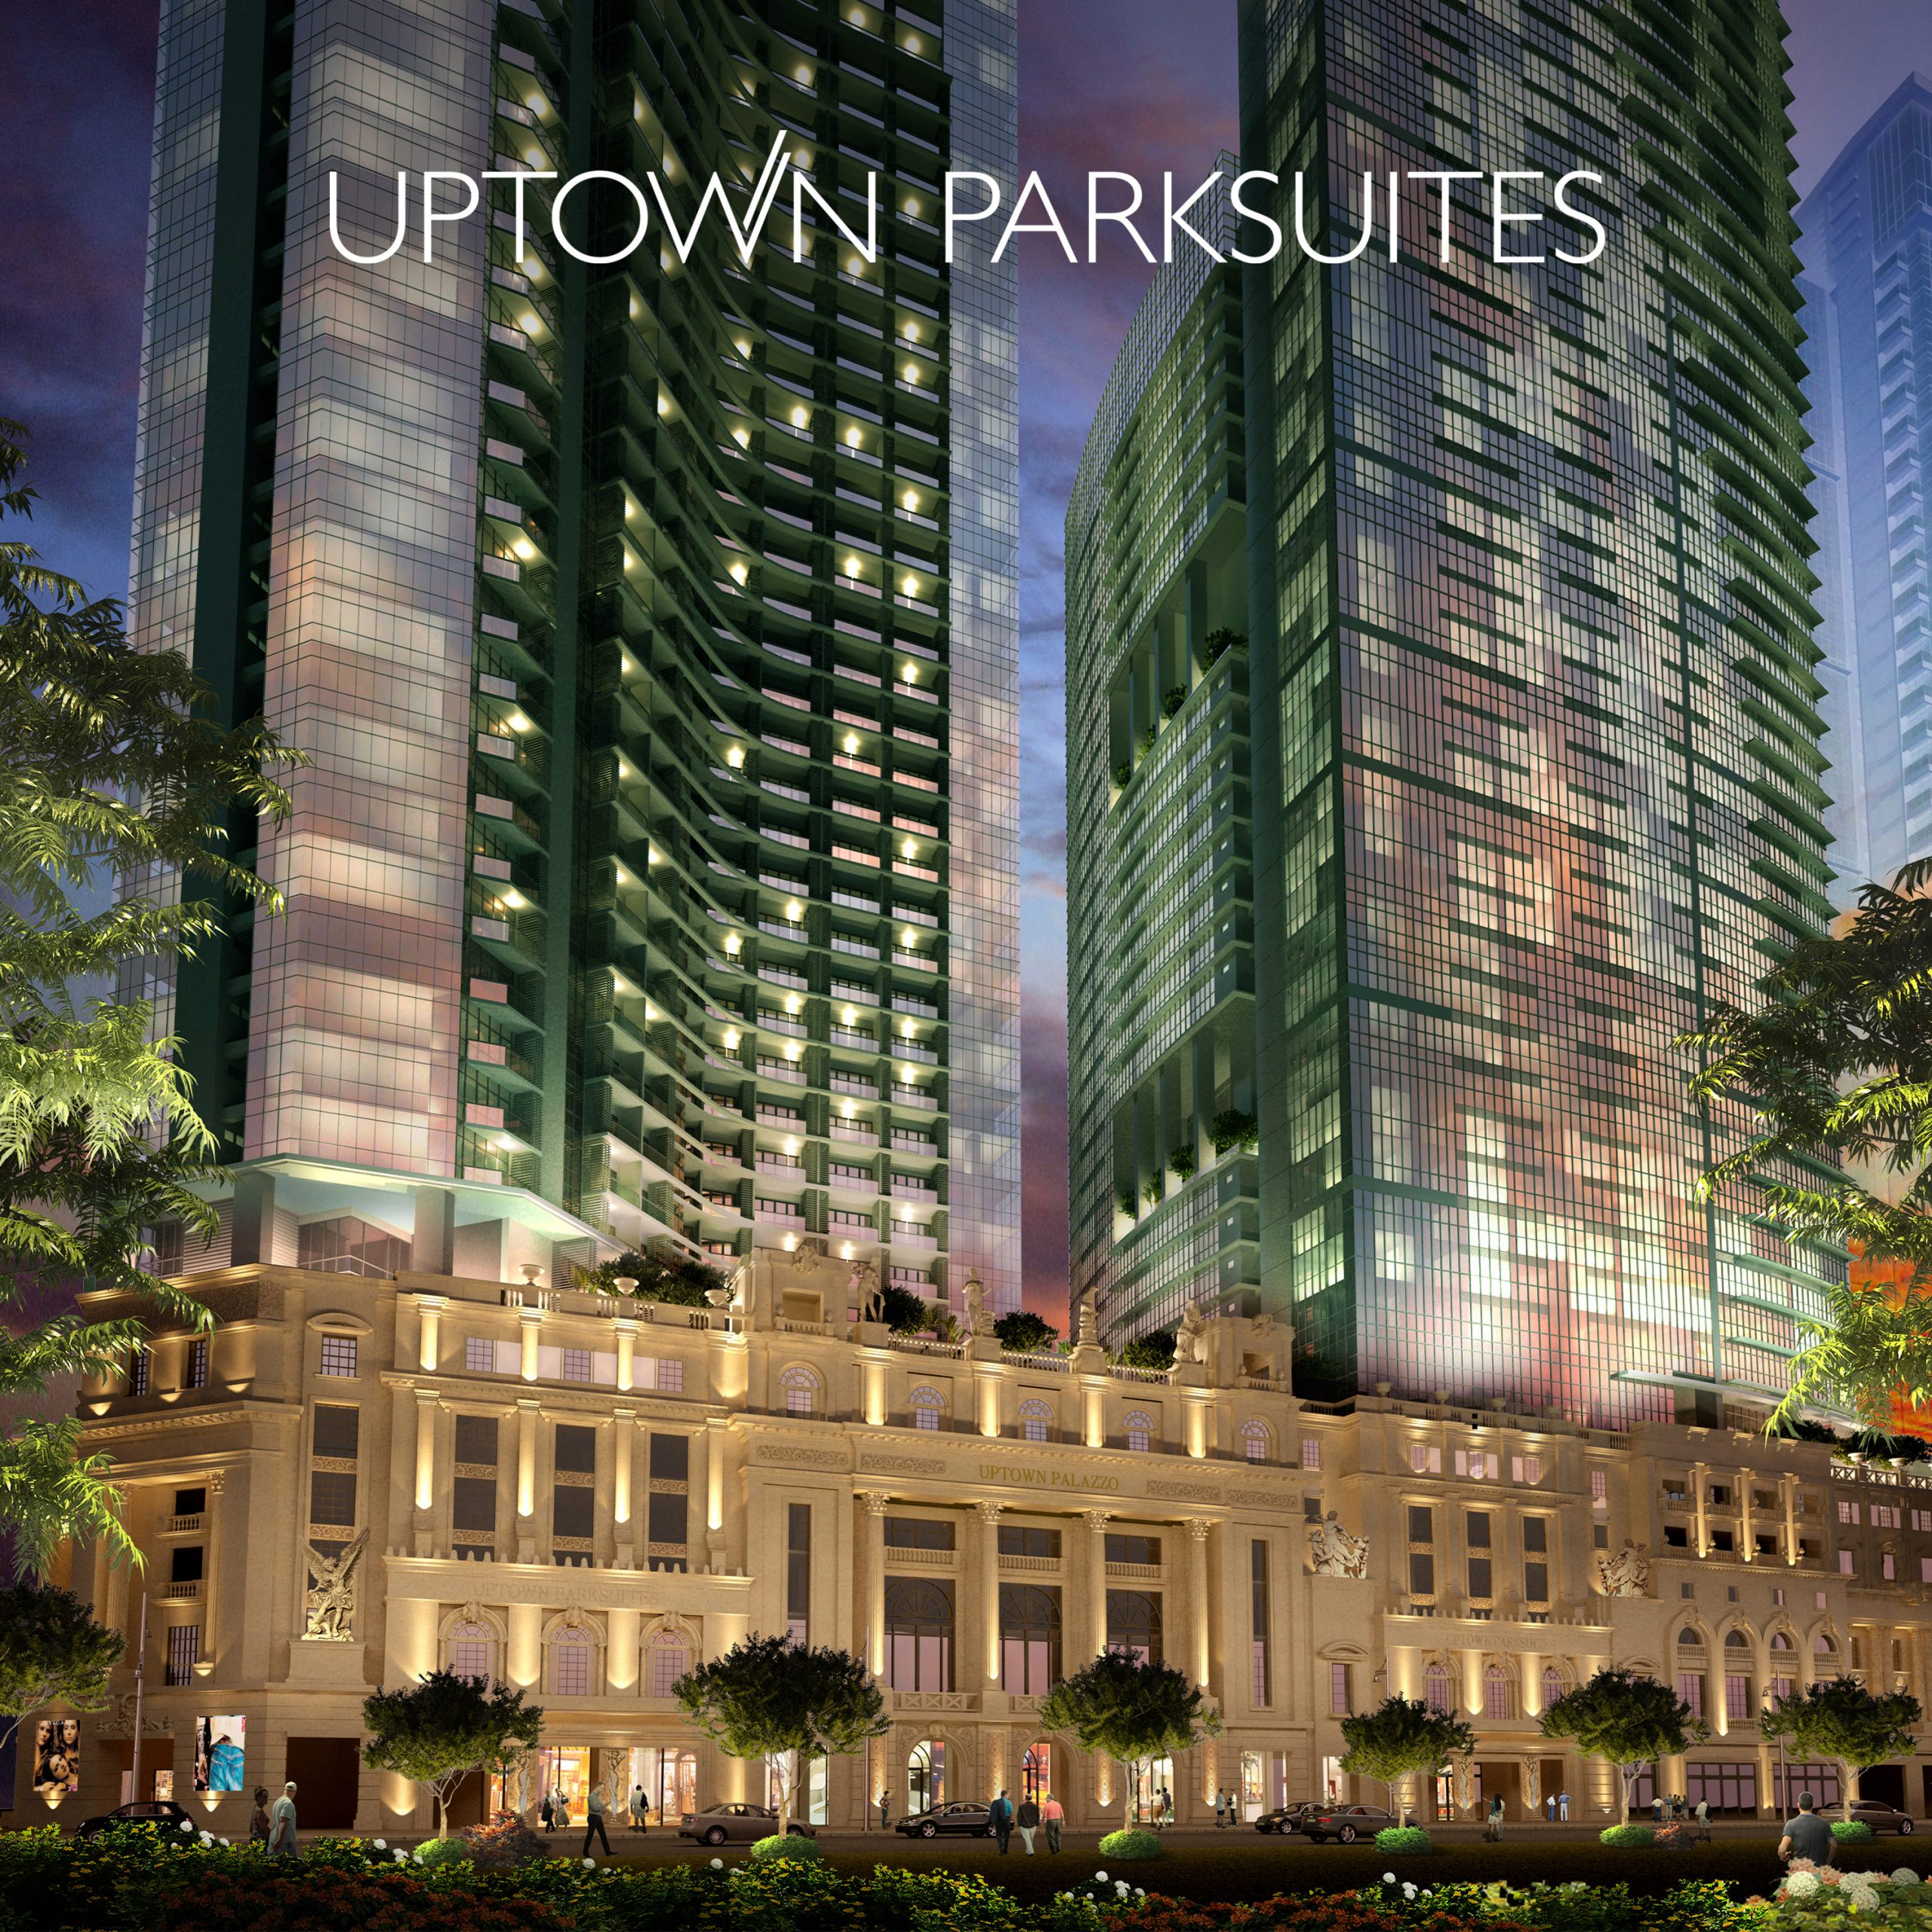 Uptown Parksuites Tower 1